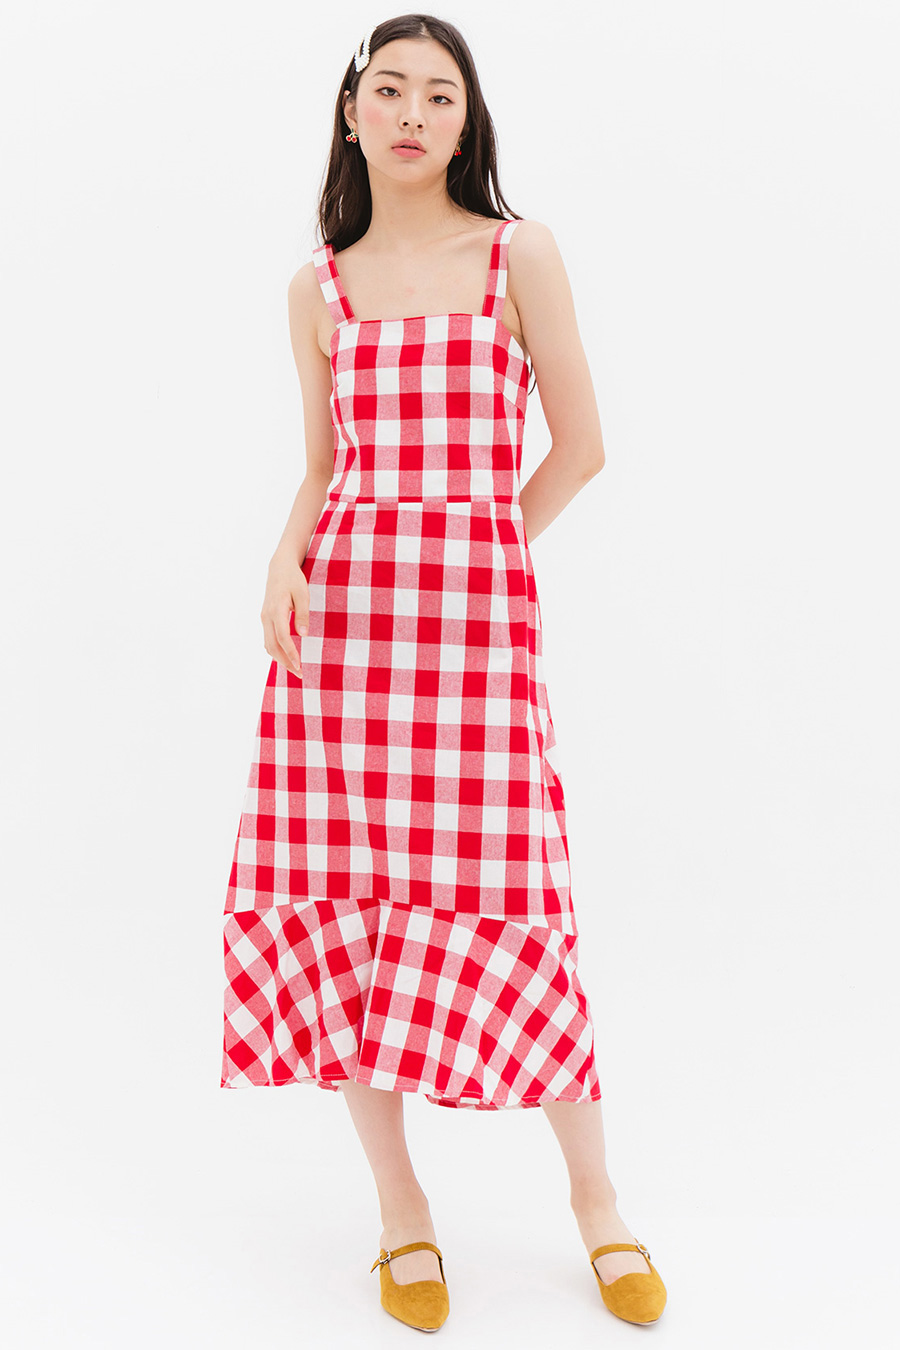 *SALE* LOMITA DRESS - CHERRY HAM